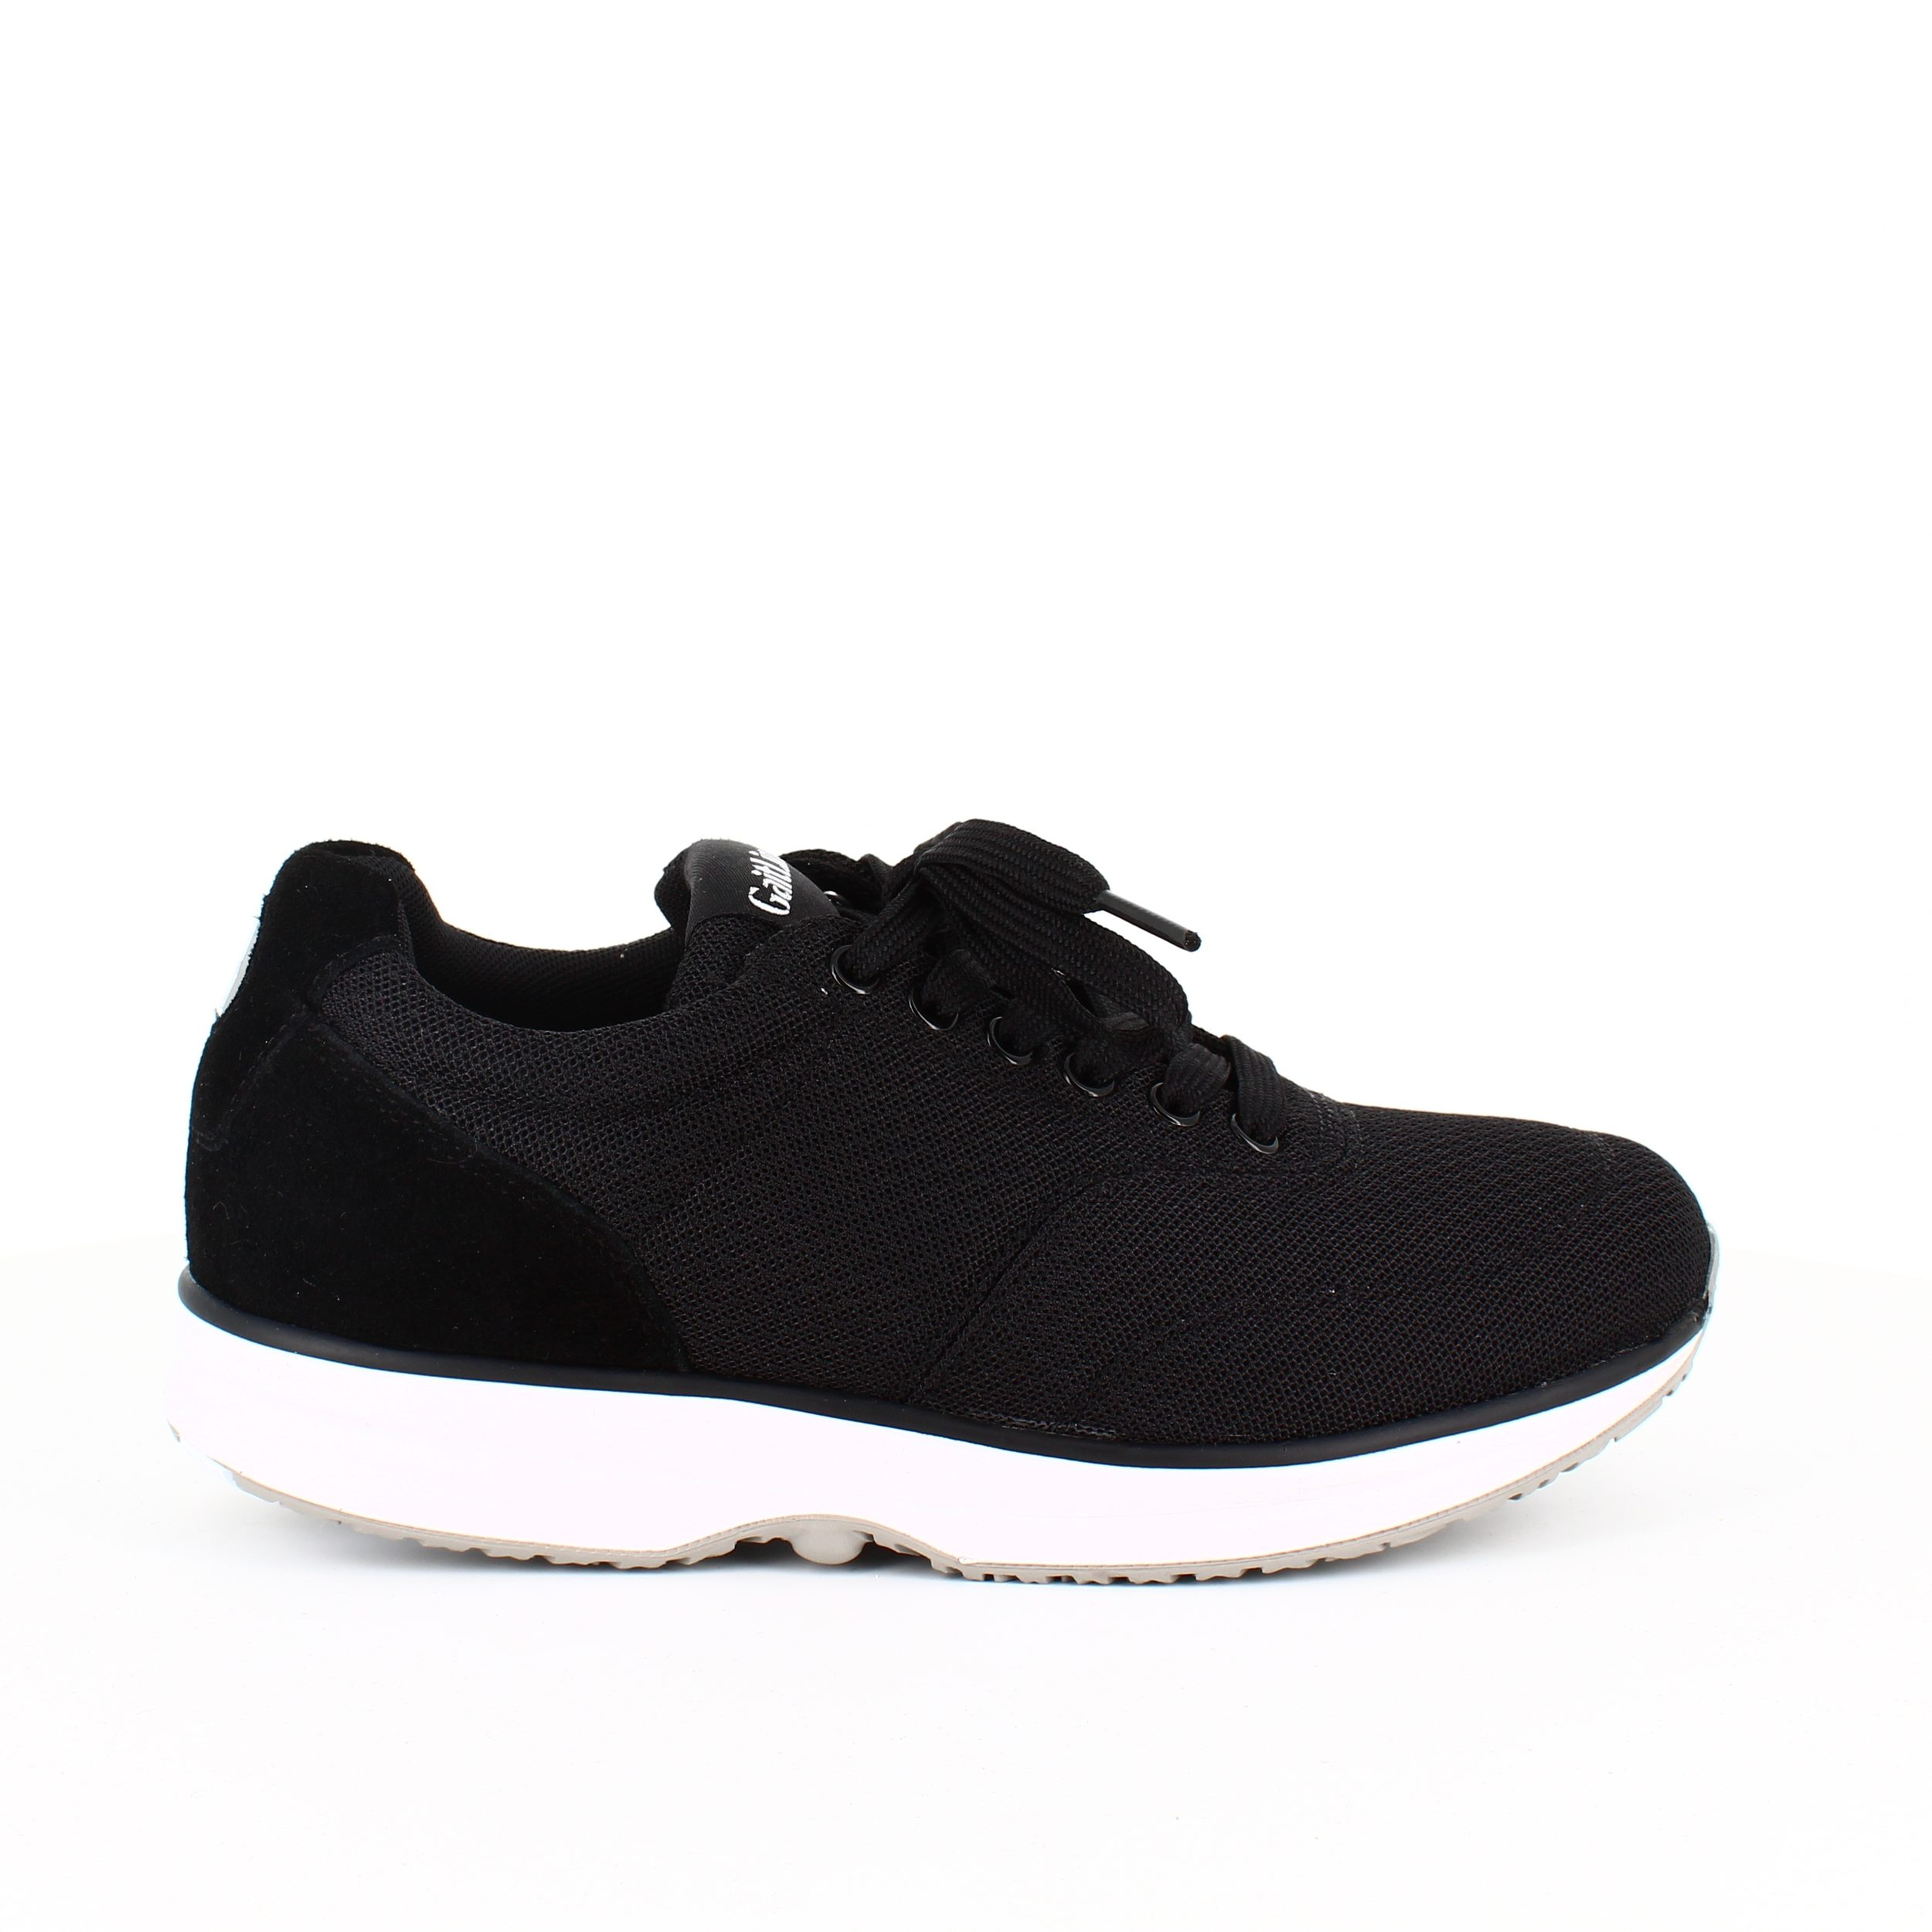 Image of   Flotte Sorte sneakers fra Gaitline - 38.5